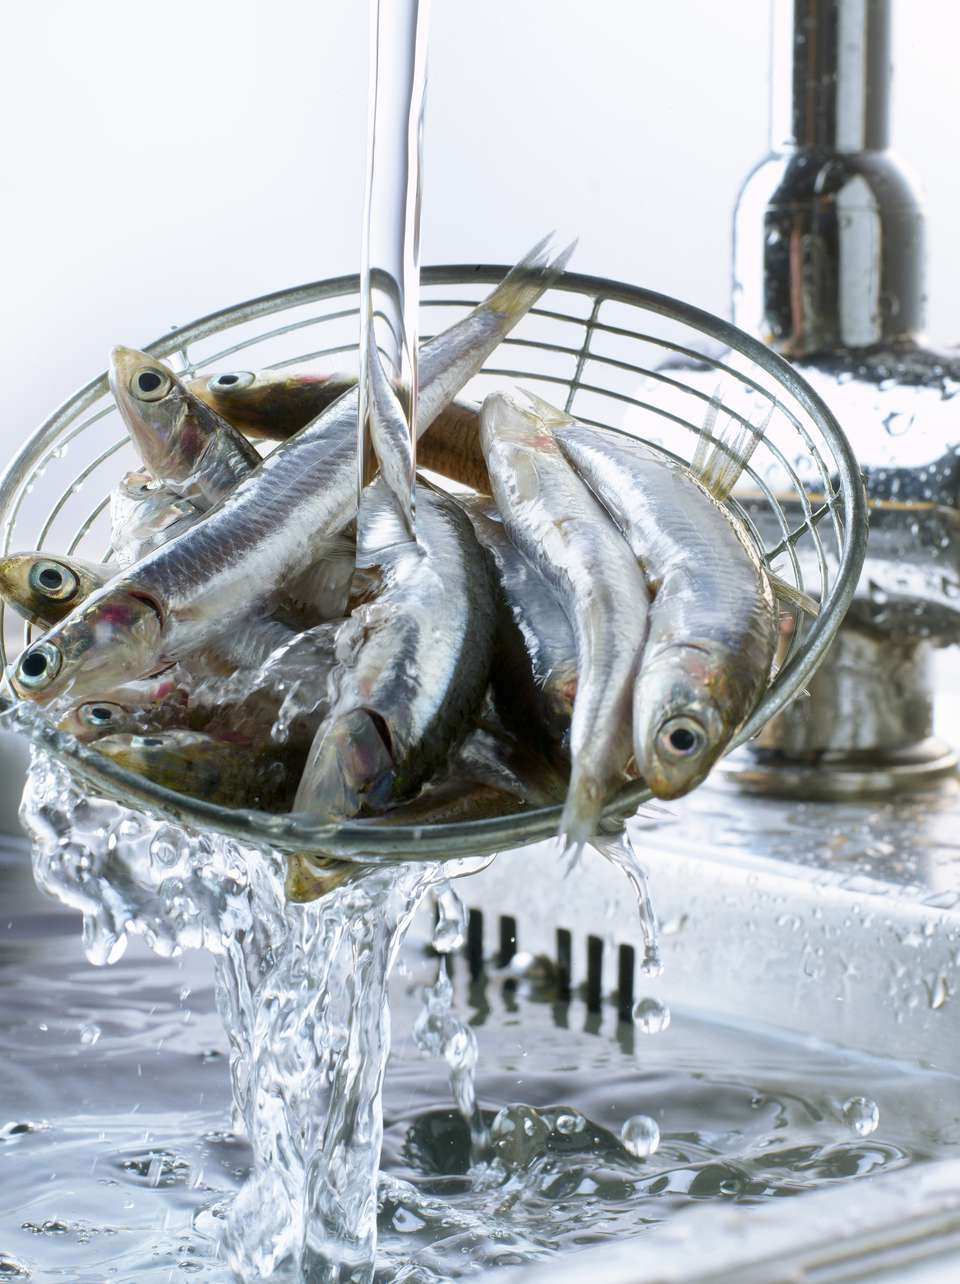 Cleaning Anchovies in the Sink